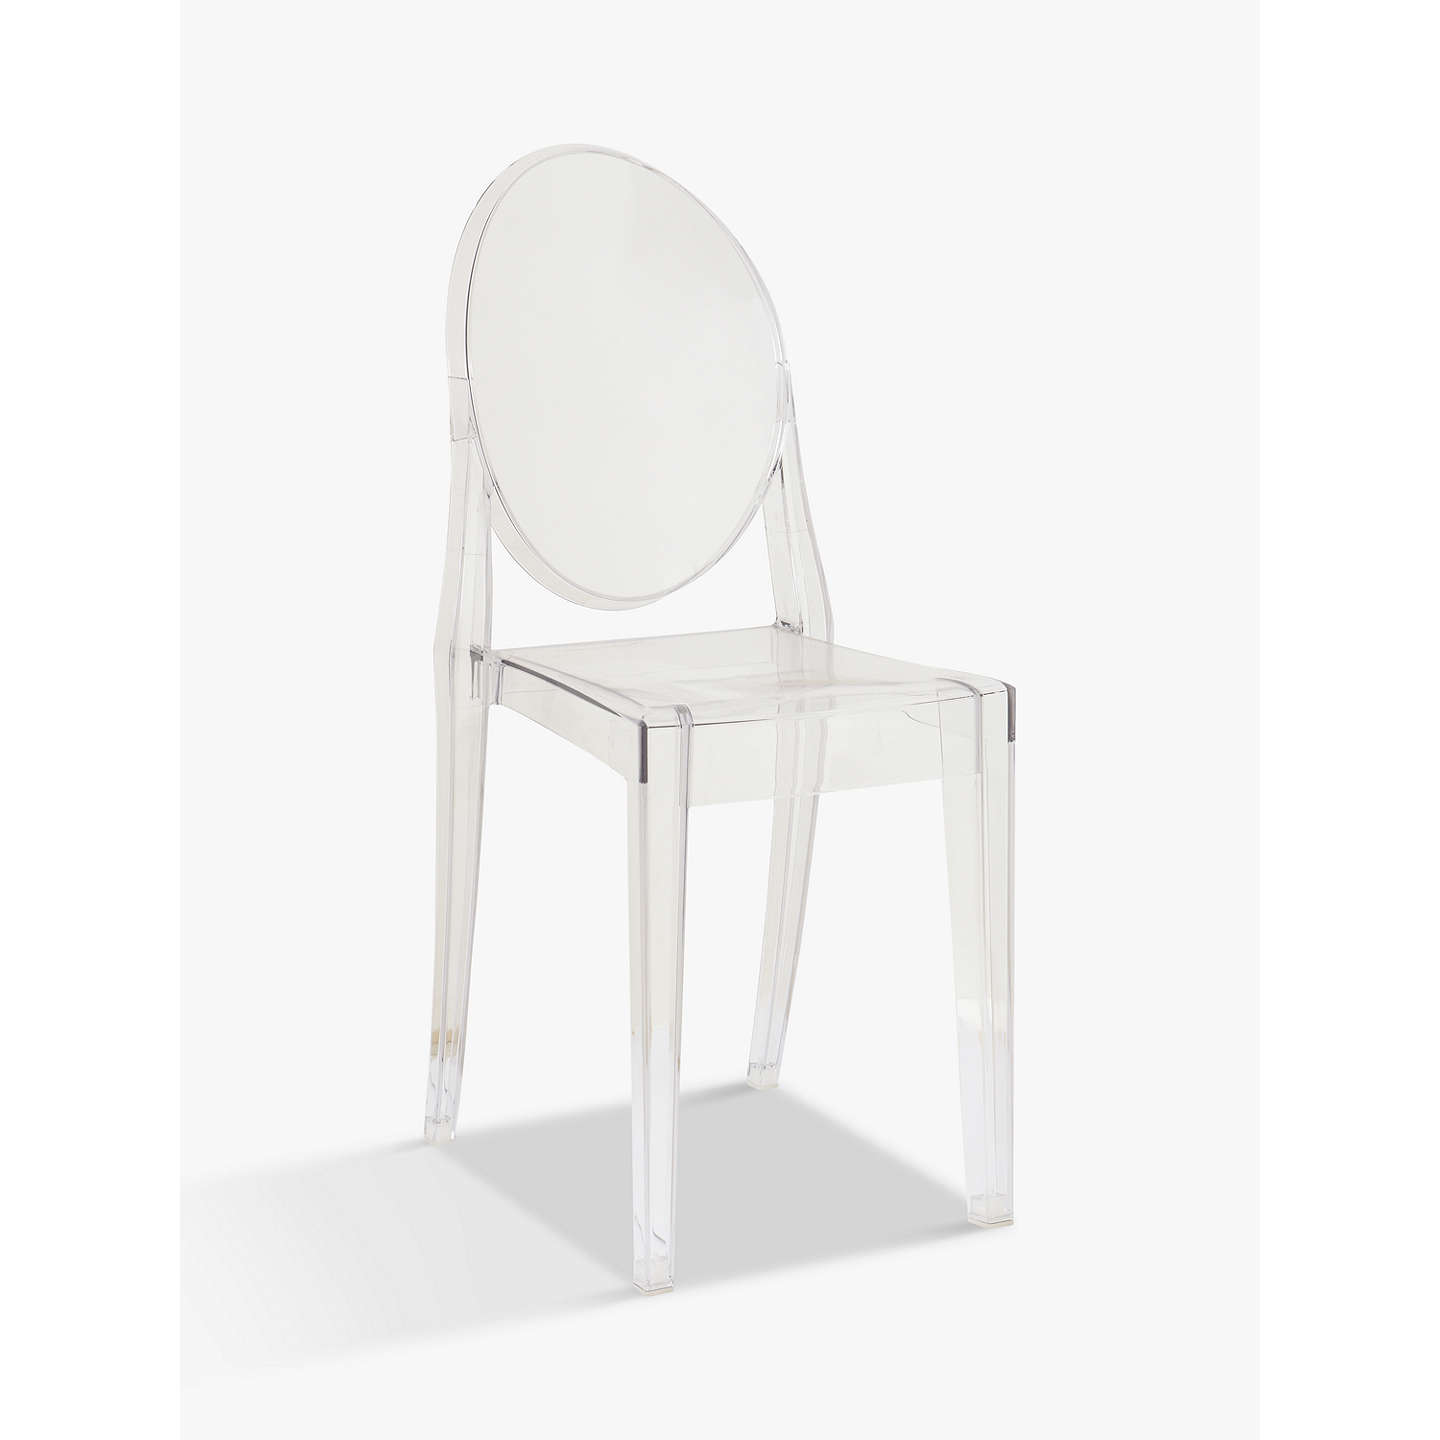 philippe starck for kartell victoria ghost chair at john lewis